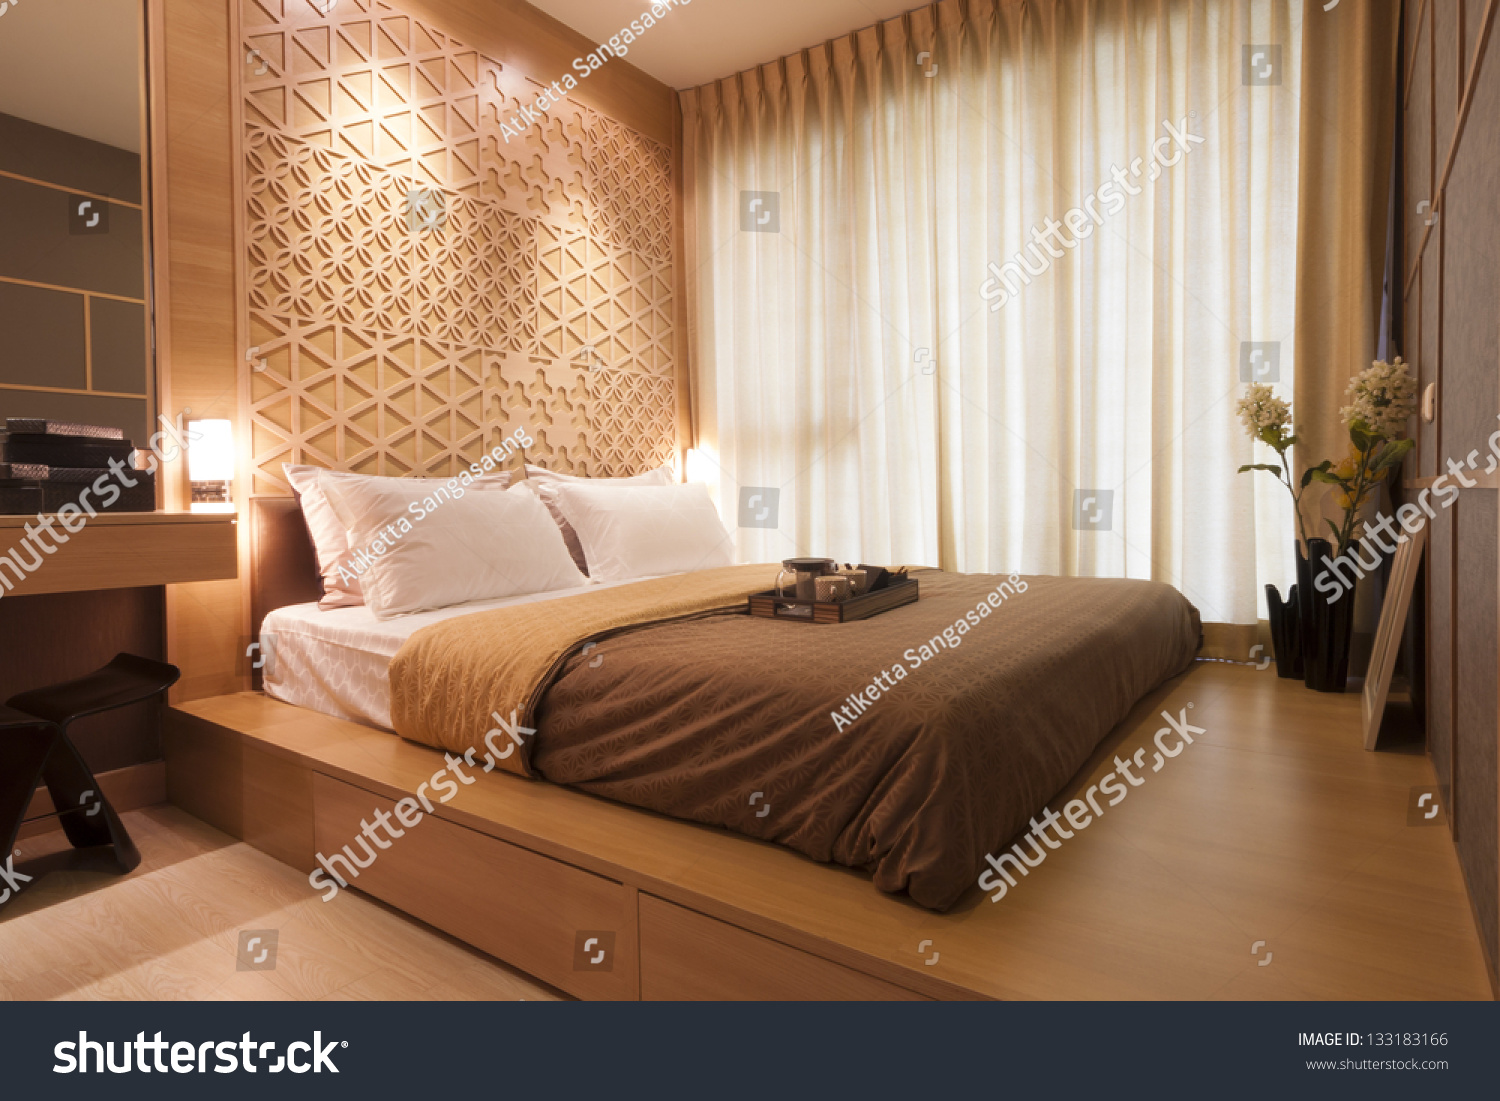 japanese style bedroom with tea set stock photo 133183166